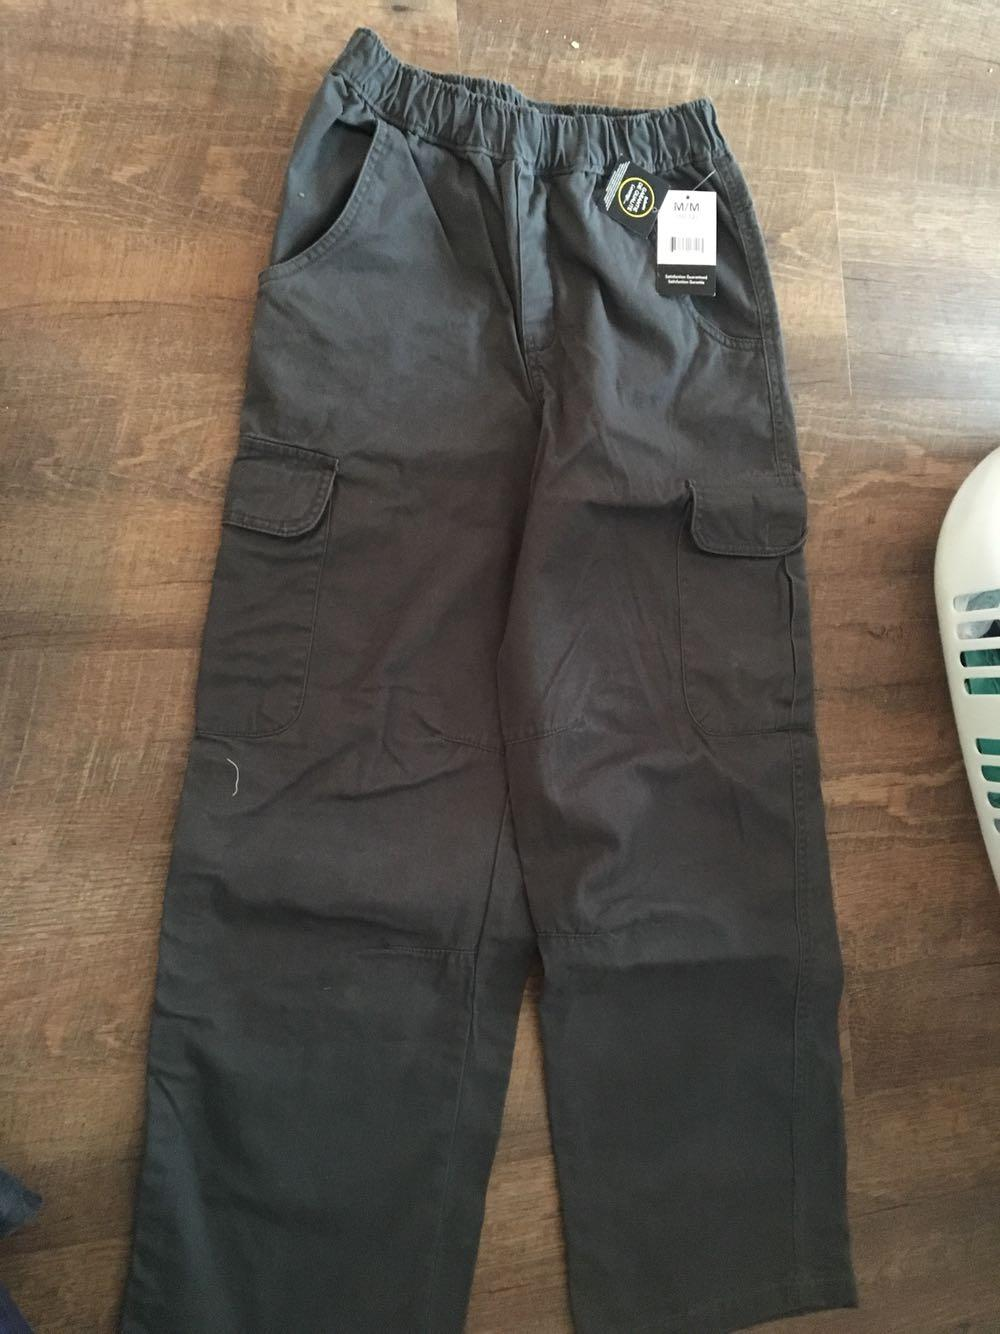 Find great deals on eBay for boys pants size Shop with confidence.